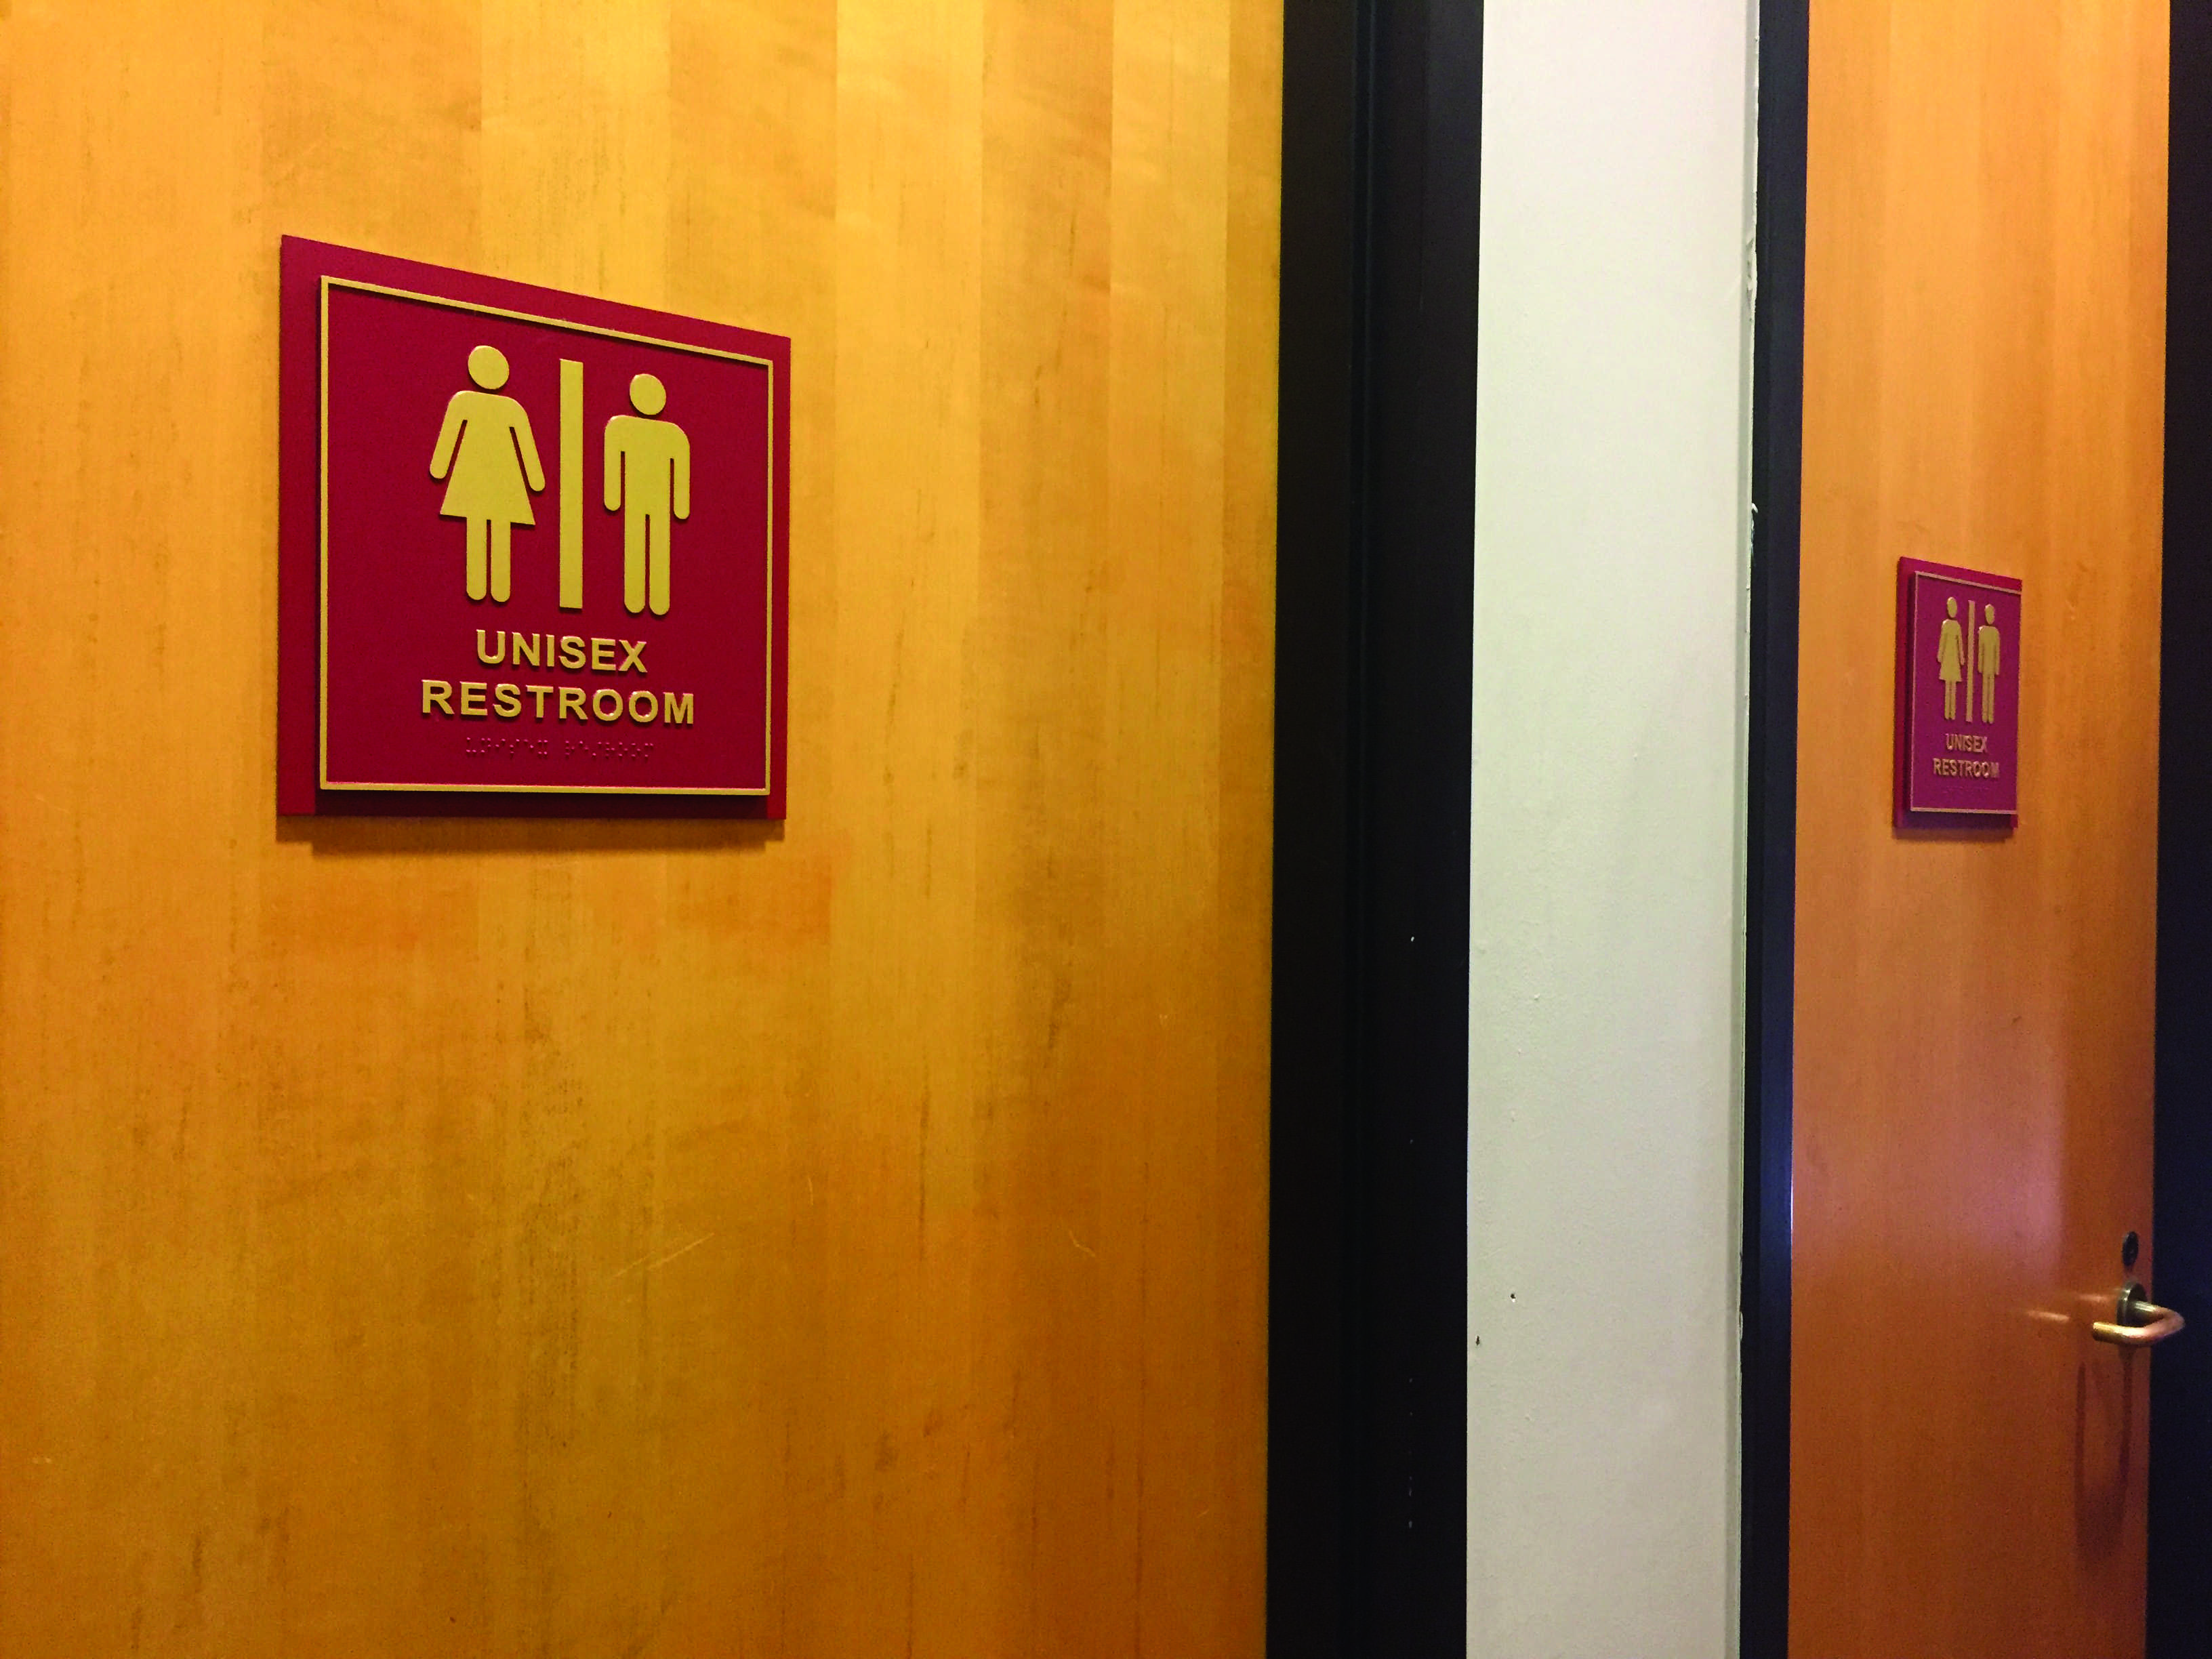 Loyola quietly develops transgender resources